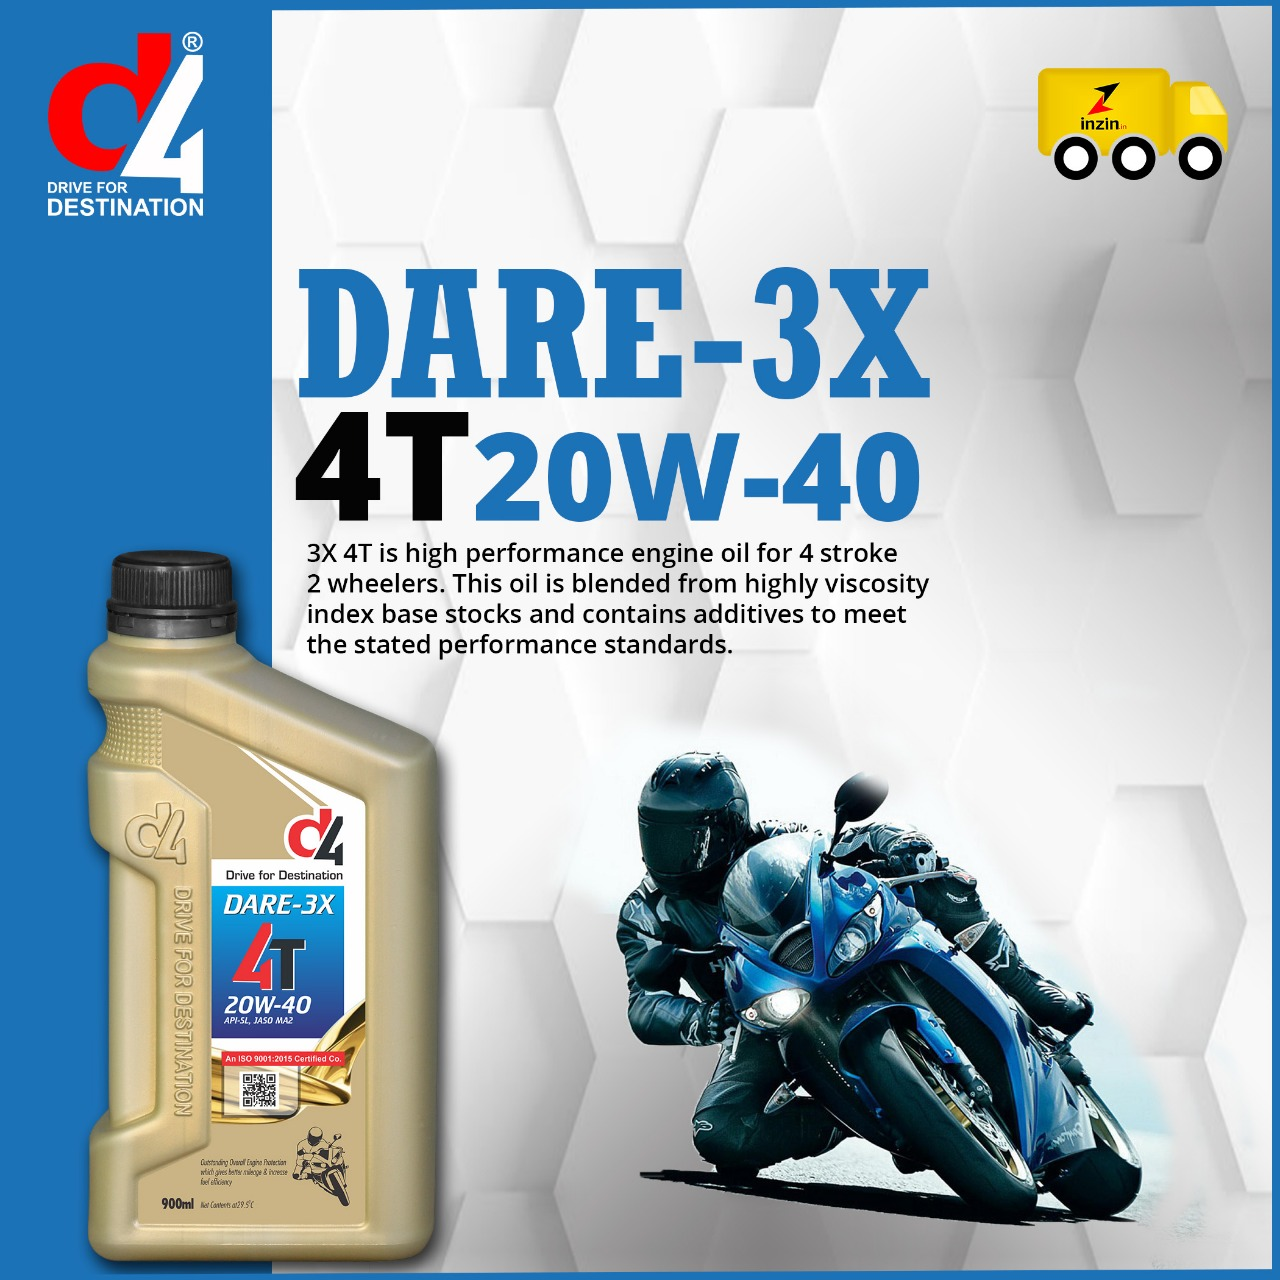 Two Wheeler oil Market